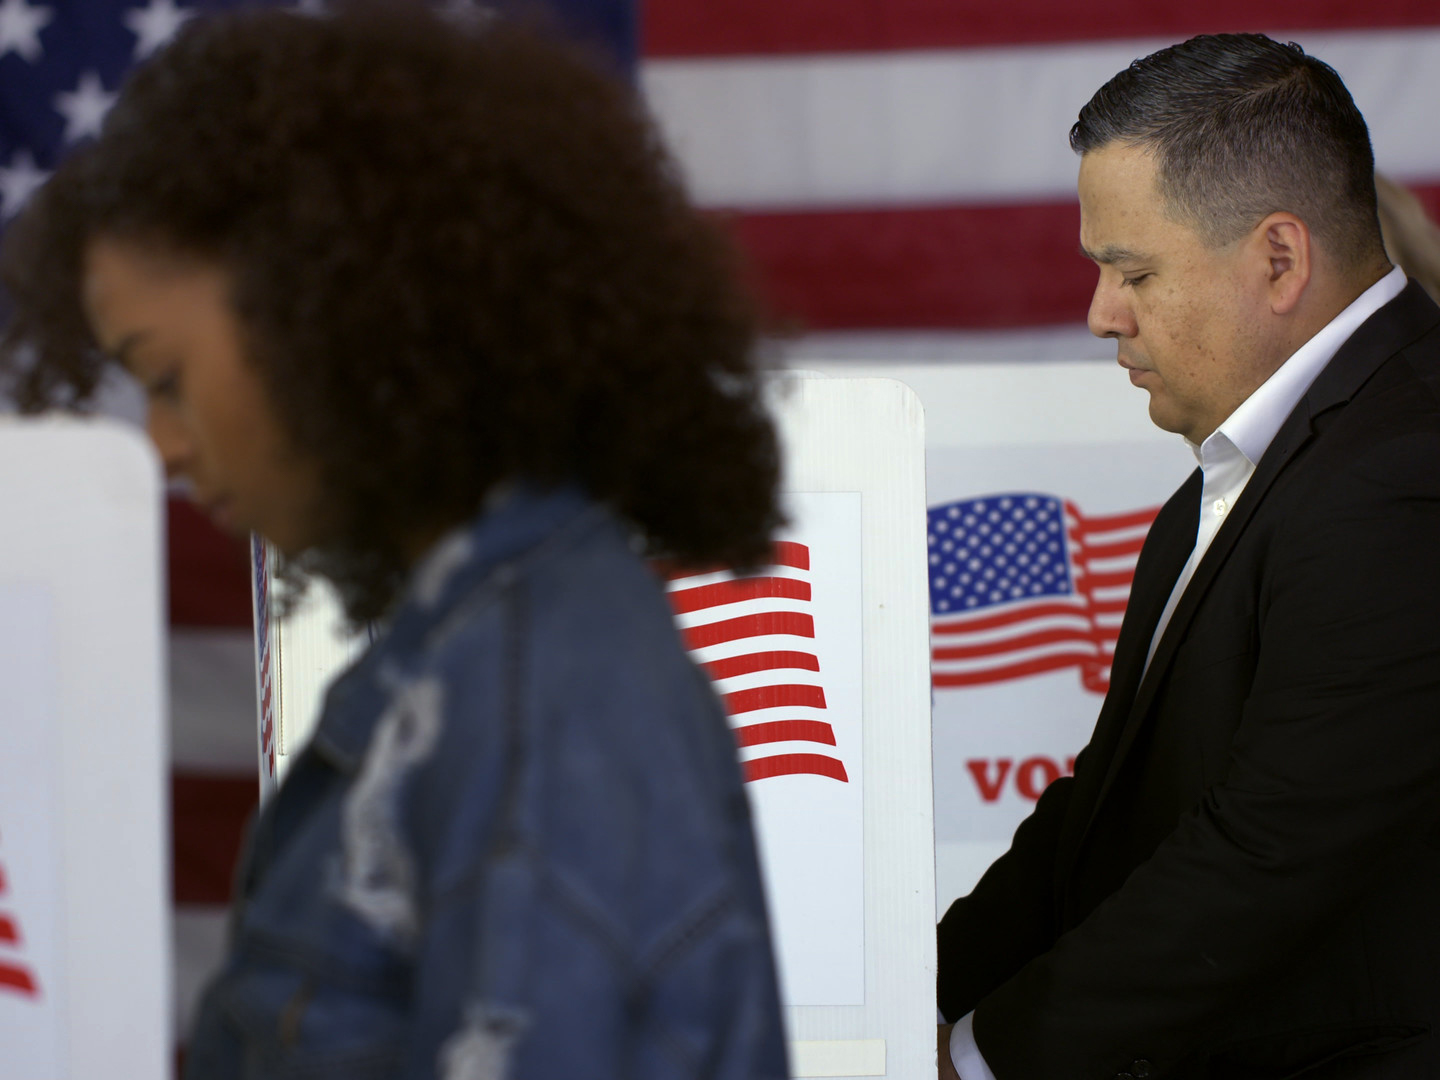 Hispanic man and woman voting in a United States election